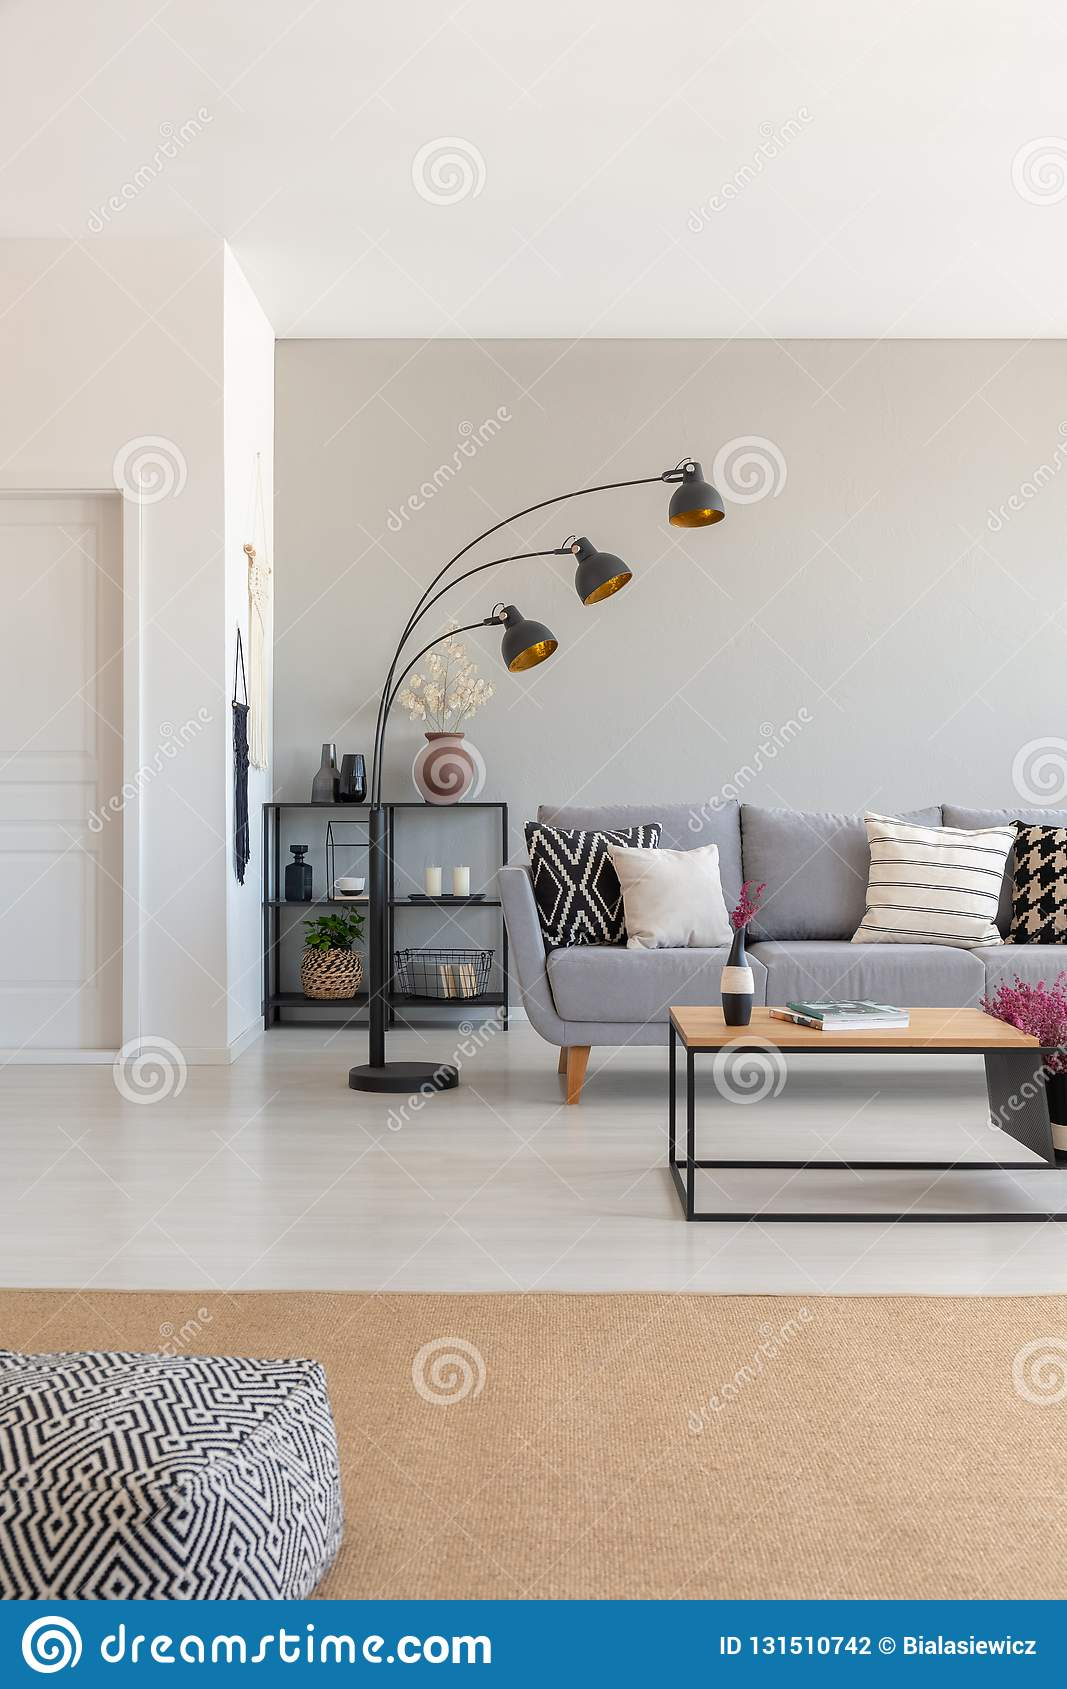 Living Room Interior Design With Metal Furniture, Grey